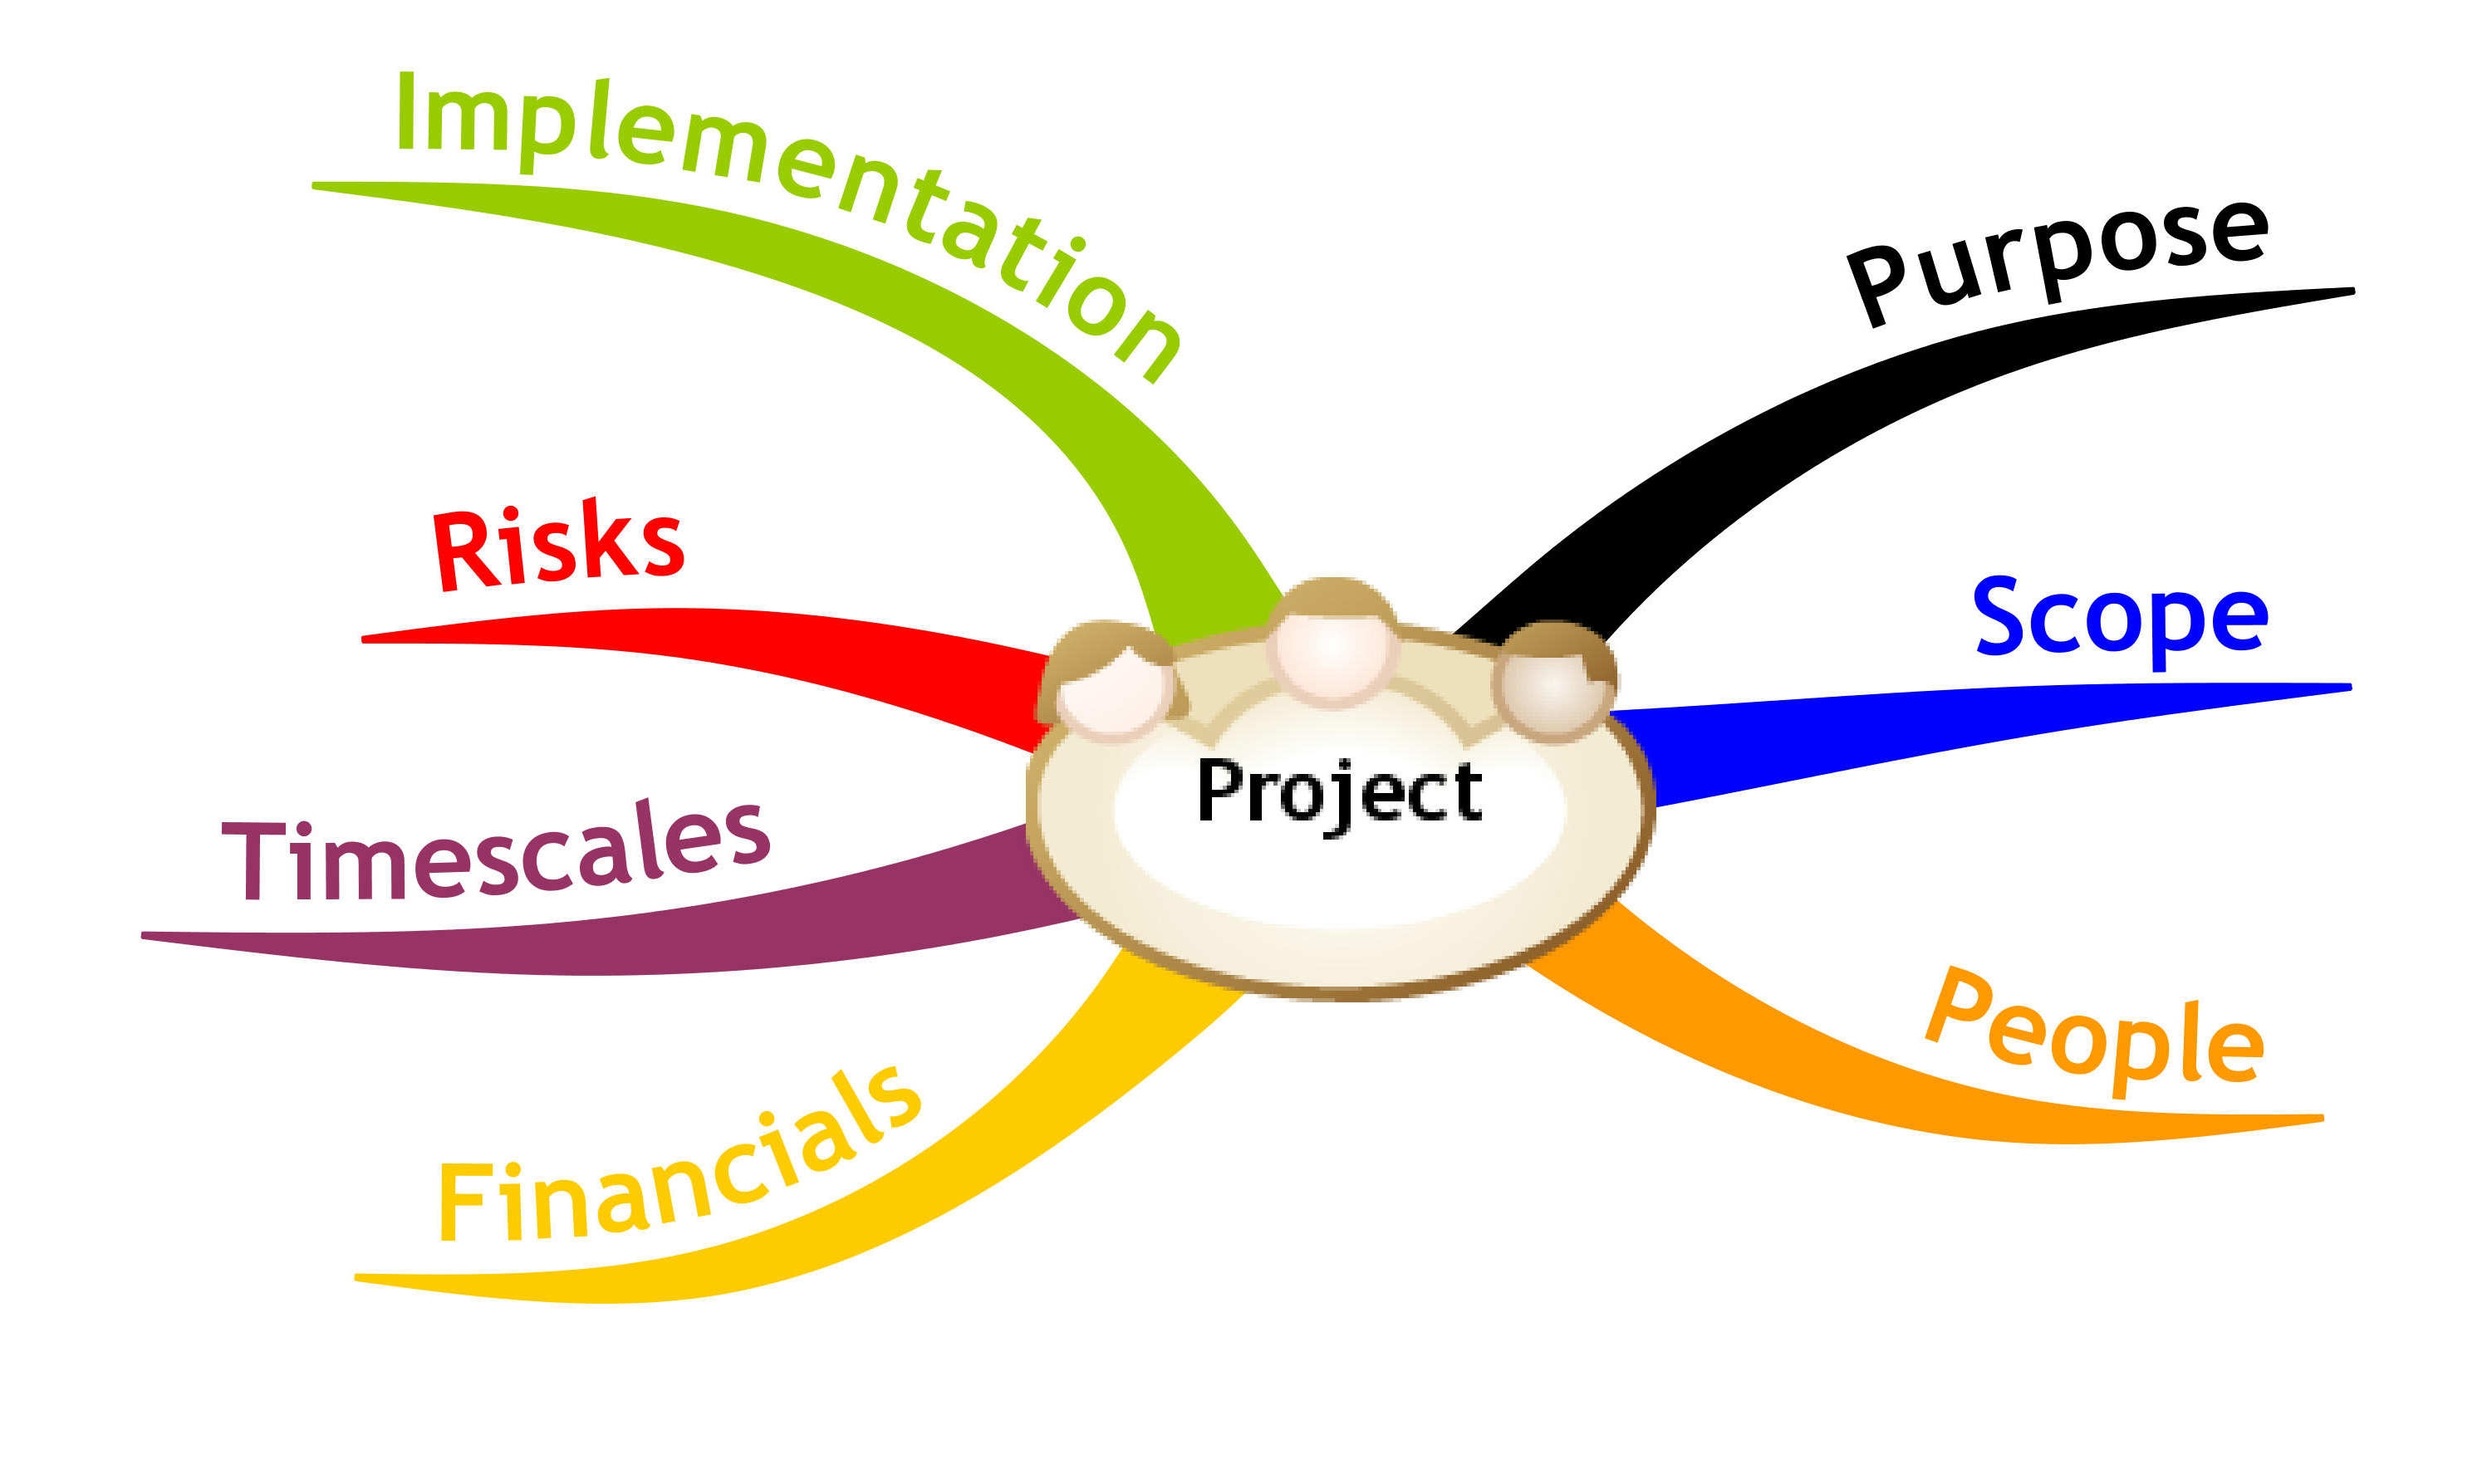 Project management plan clipart image library download How to Successfully Manage Projects with Timely Created ... image library download